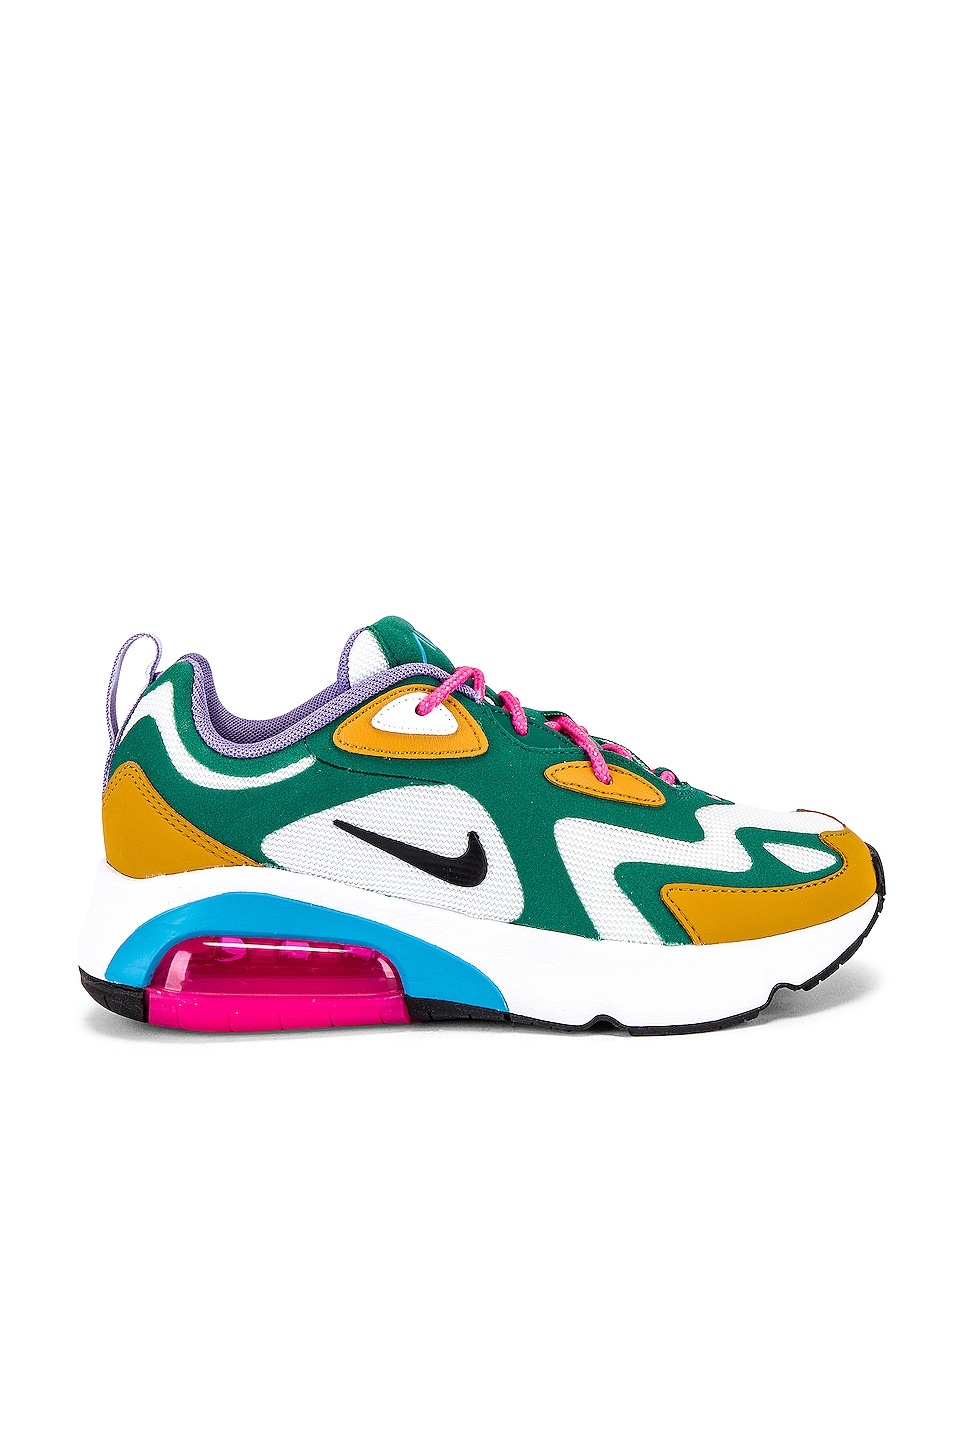 Women's Air Max 200 Sneaker